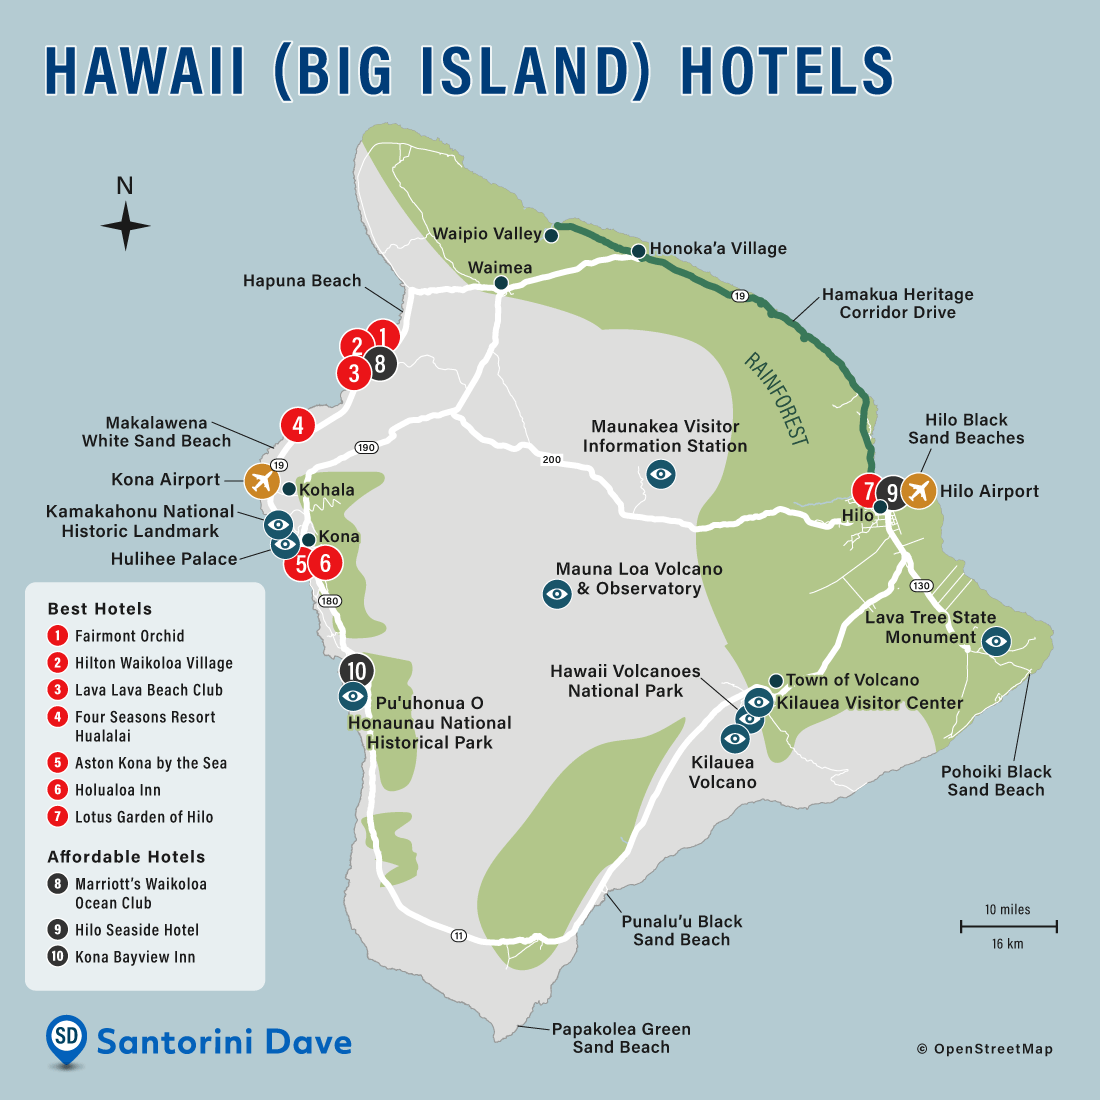 Map of Big Island Hotels, Towns, and Beaches.